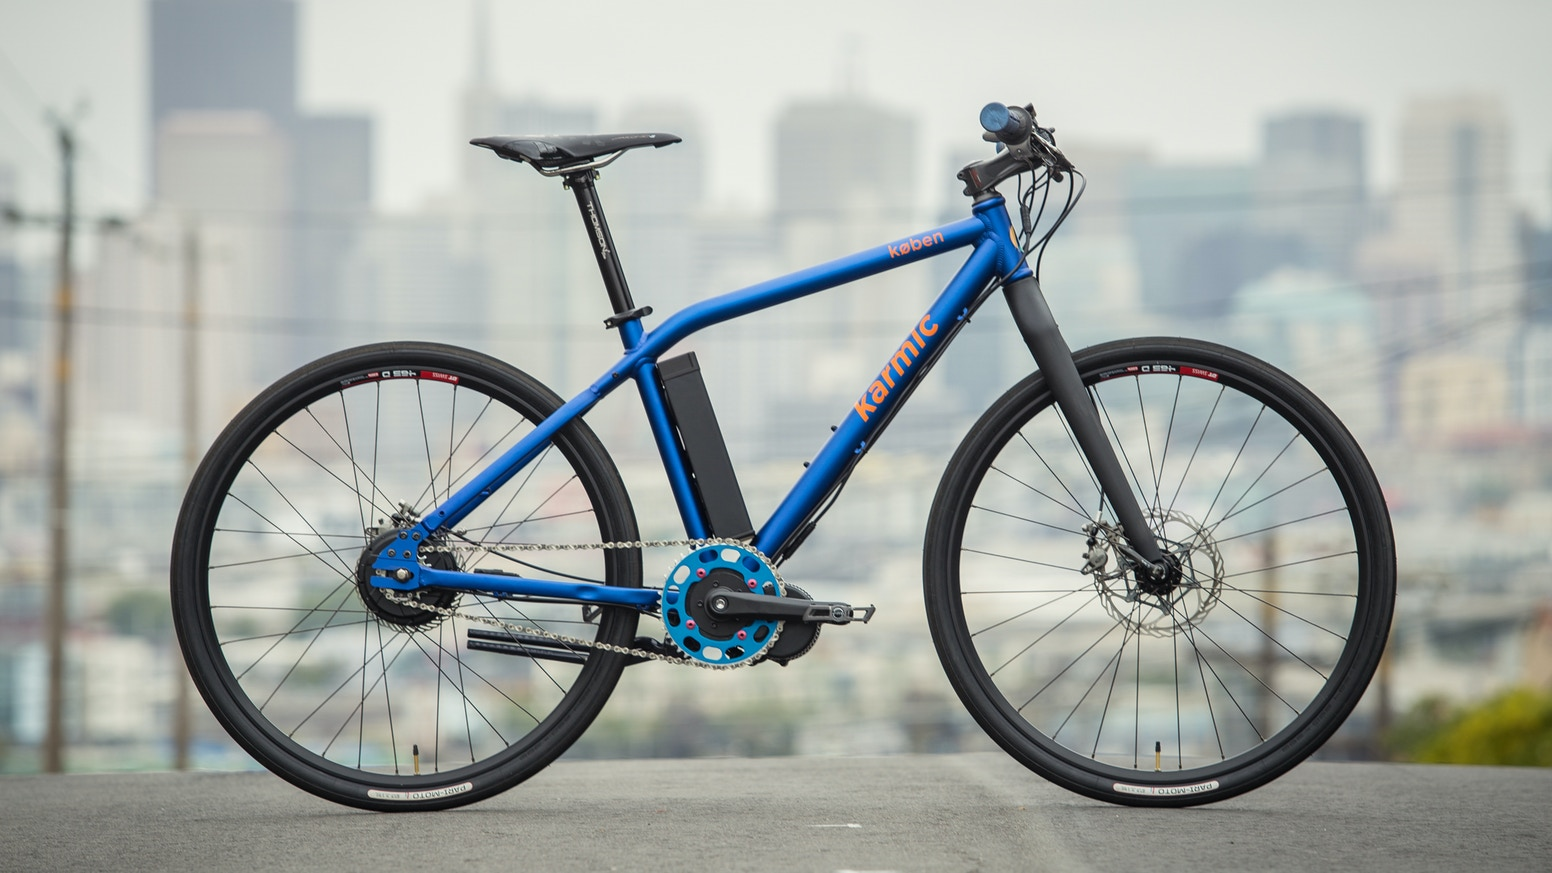 762786e3db3 The Karmic Koben is a modern ebike that lets you ride faster, go farther,